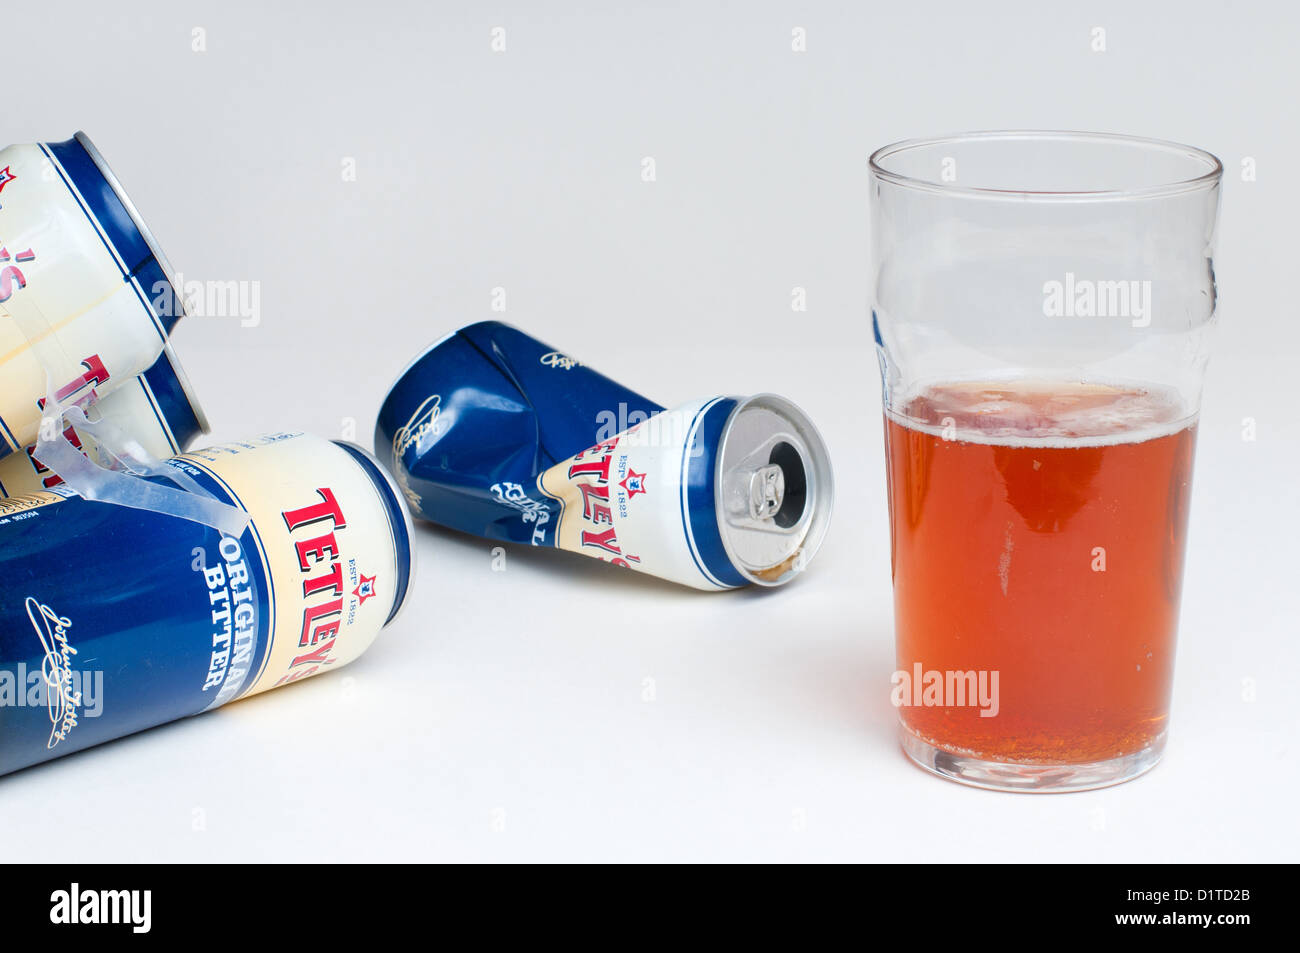 A half empty pint beer glass with full and empty beer cans on a table. - Stock Image